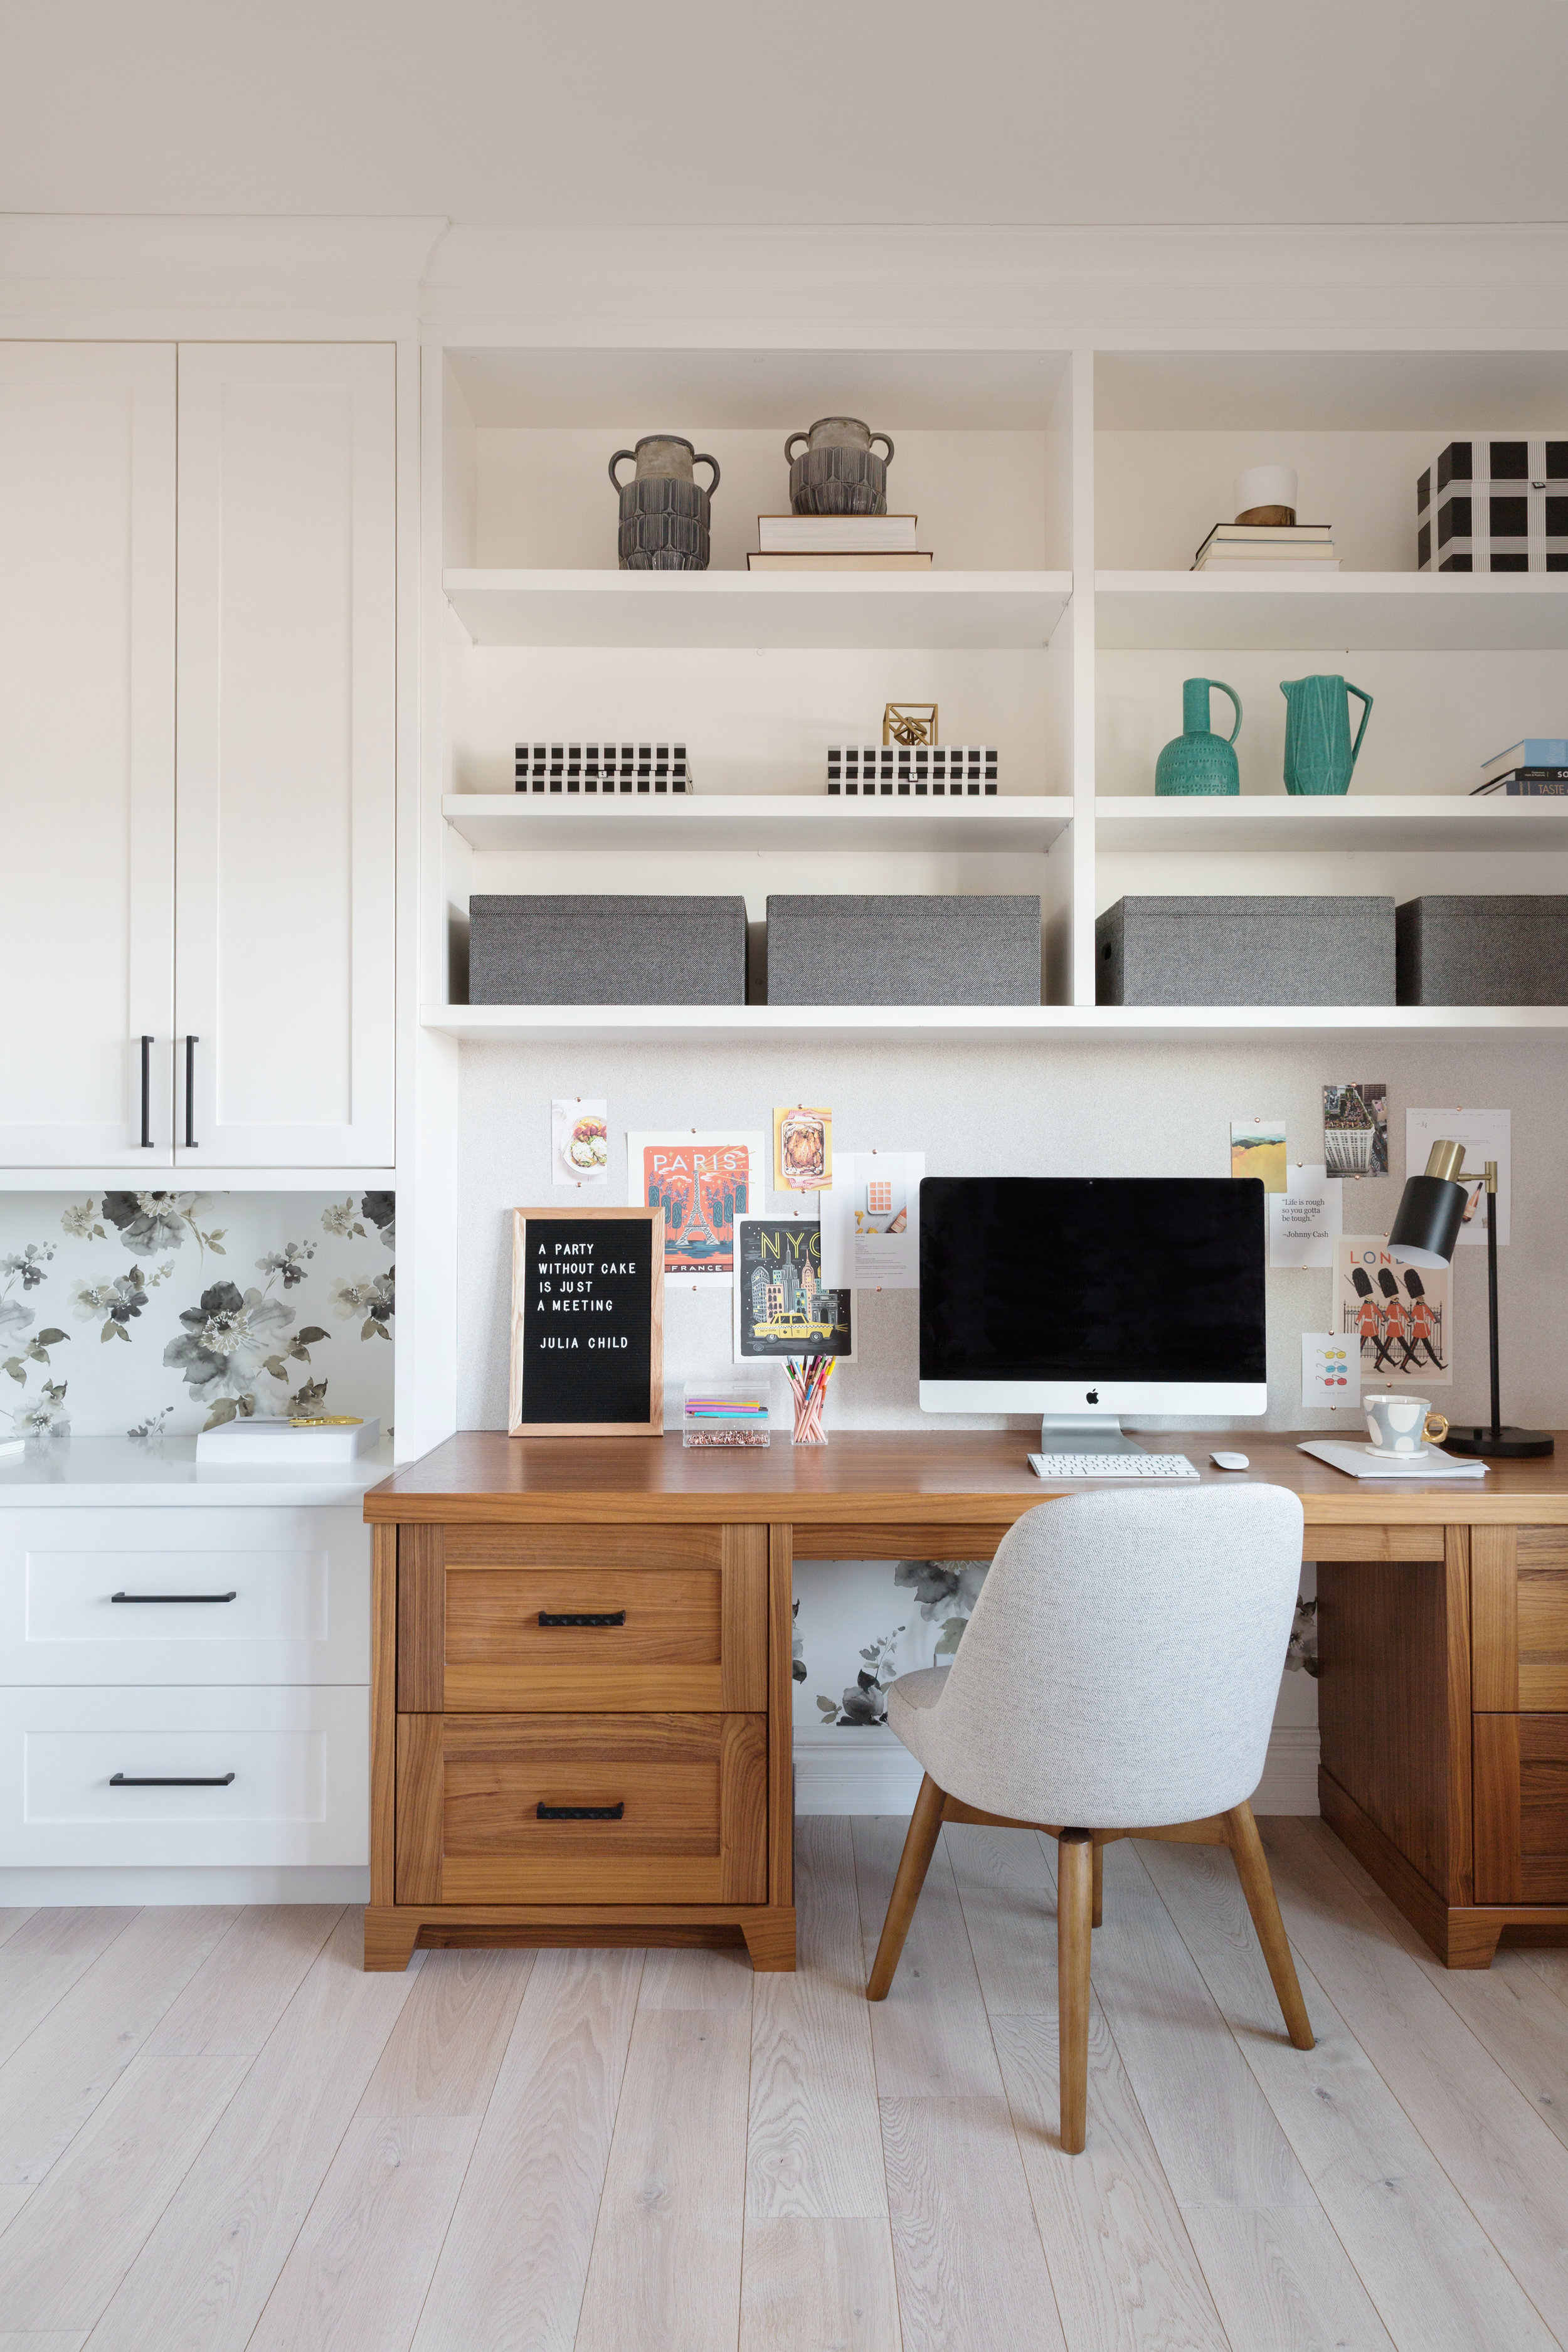 Nyla Free Designs, Country House, Office round up